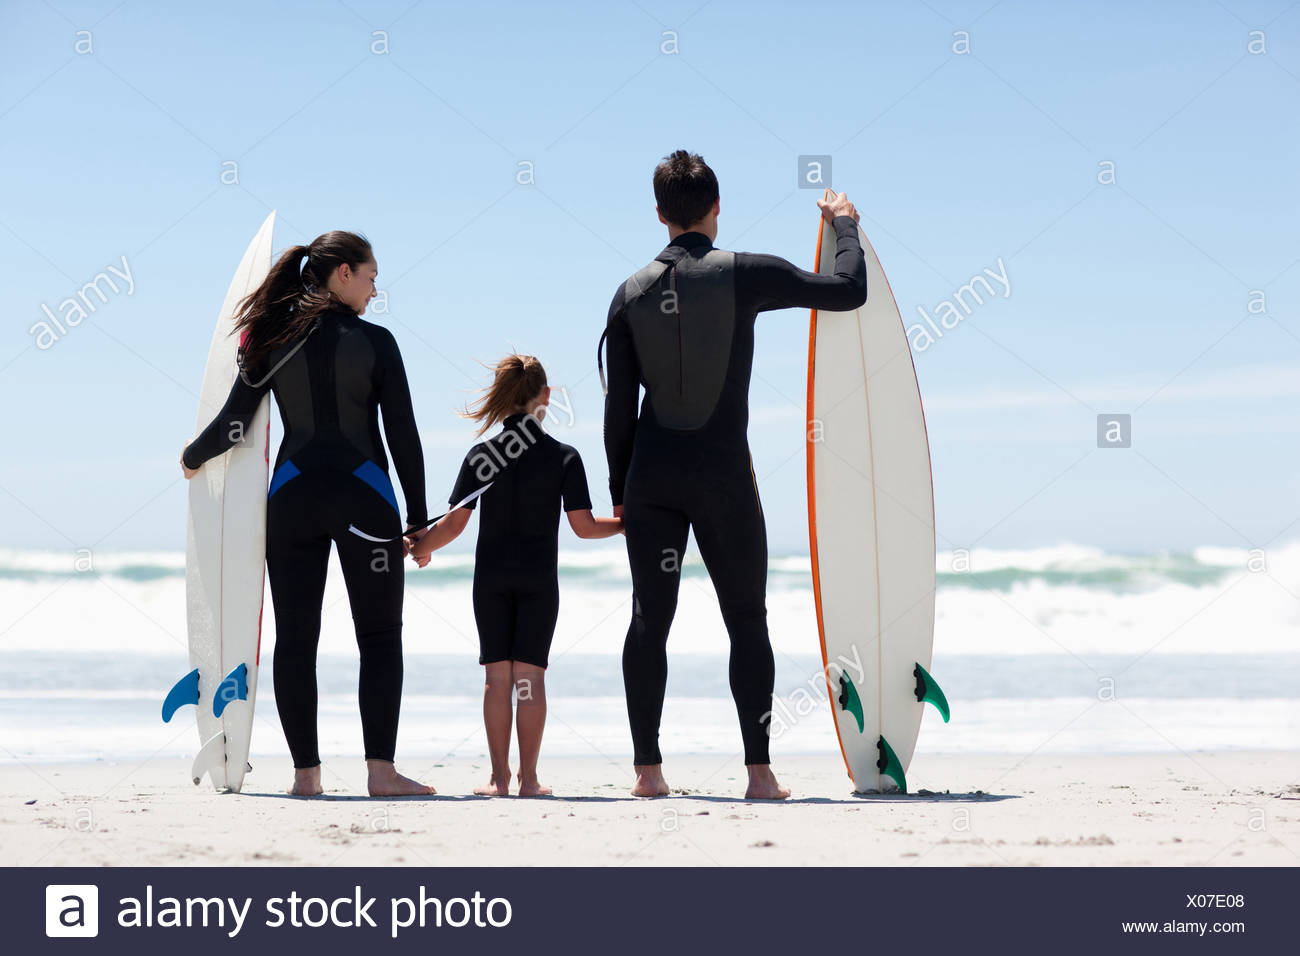 Family in wetsuits with surfboards holding hands on beach - Stock Image